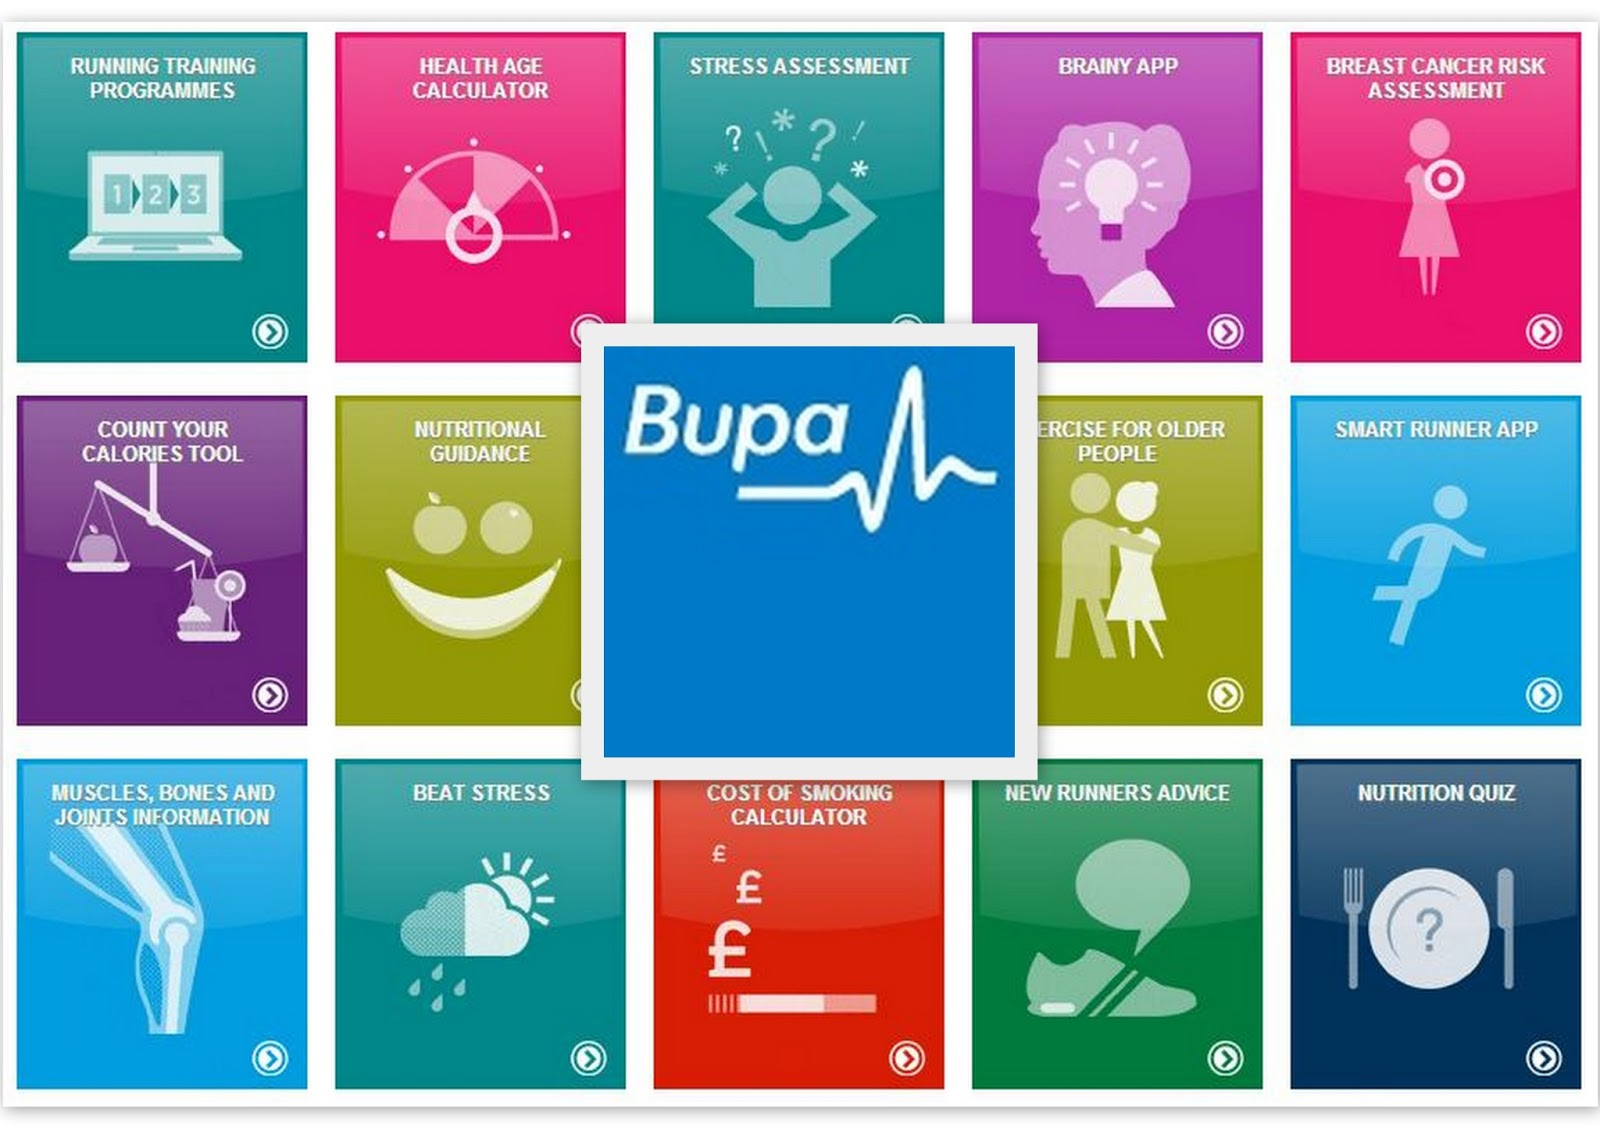 how to cancel bupa insurance